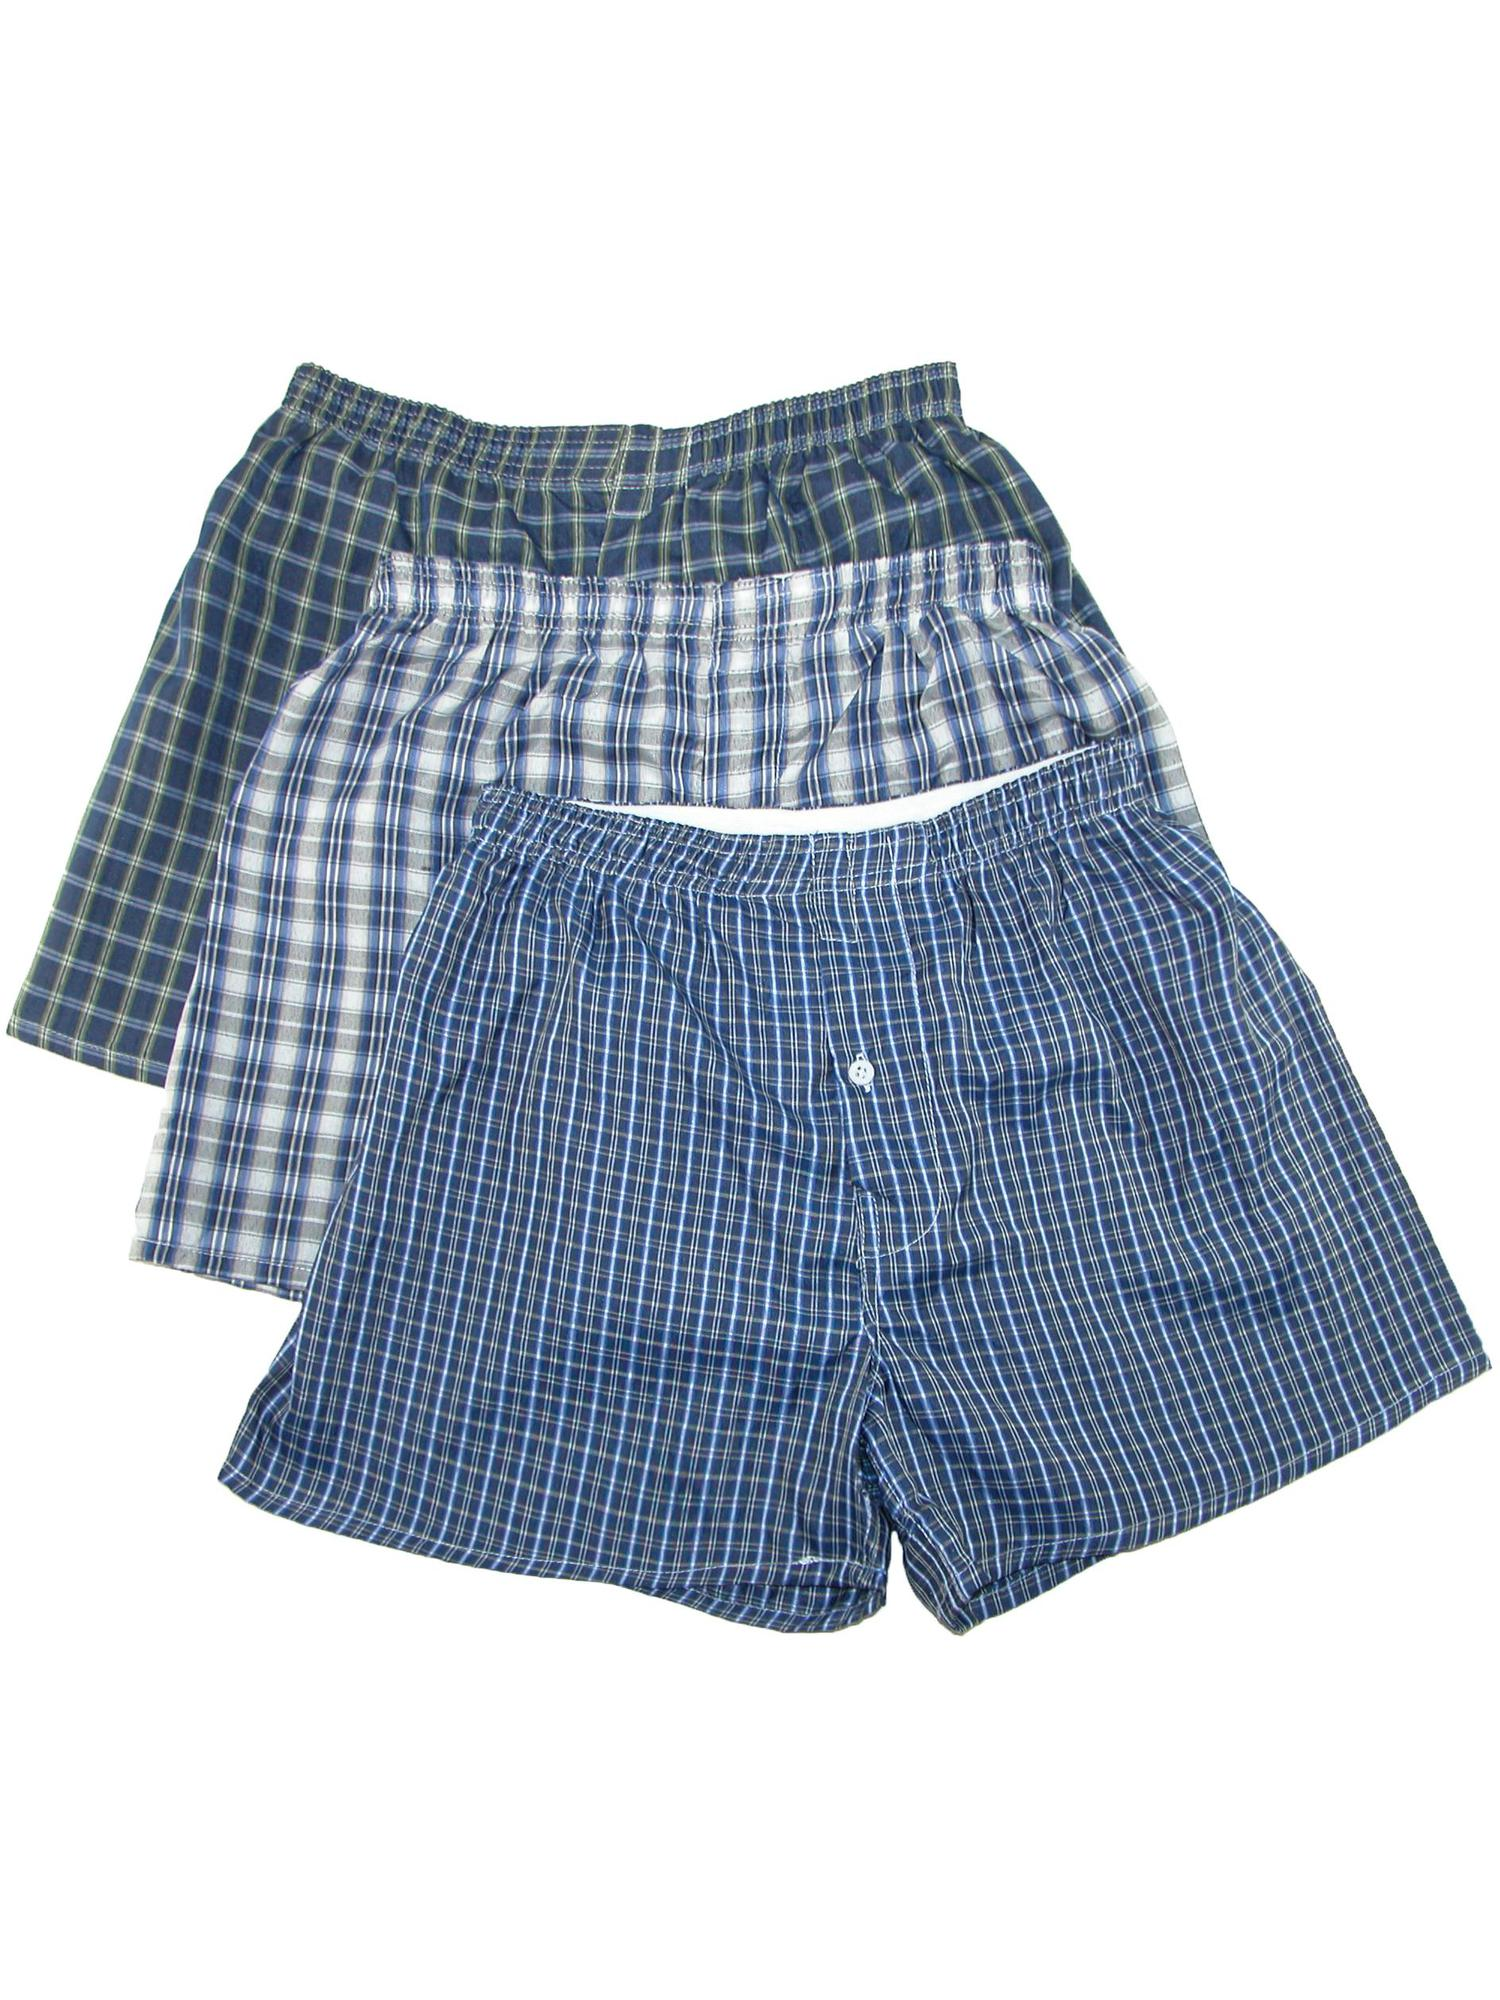 Men's Big and Tall Madras Plaid Boxer Shorts (Pack of 3),  Multi